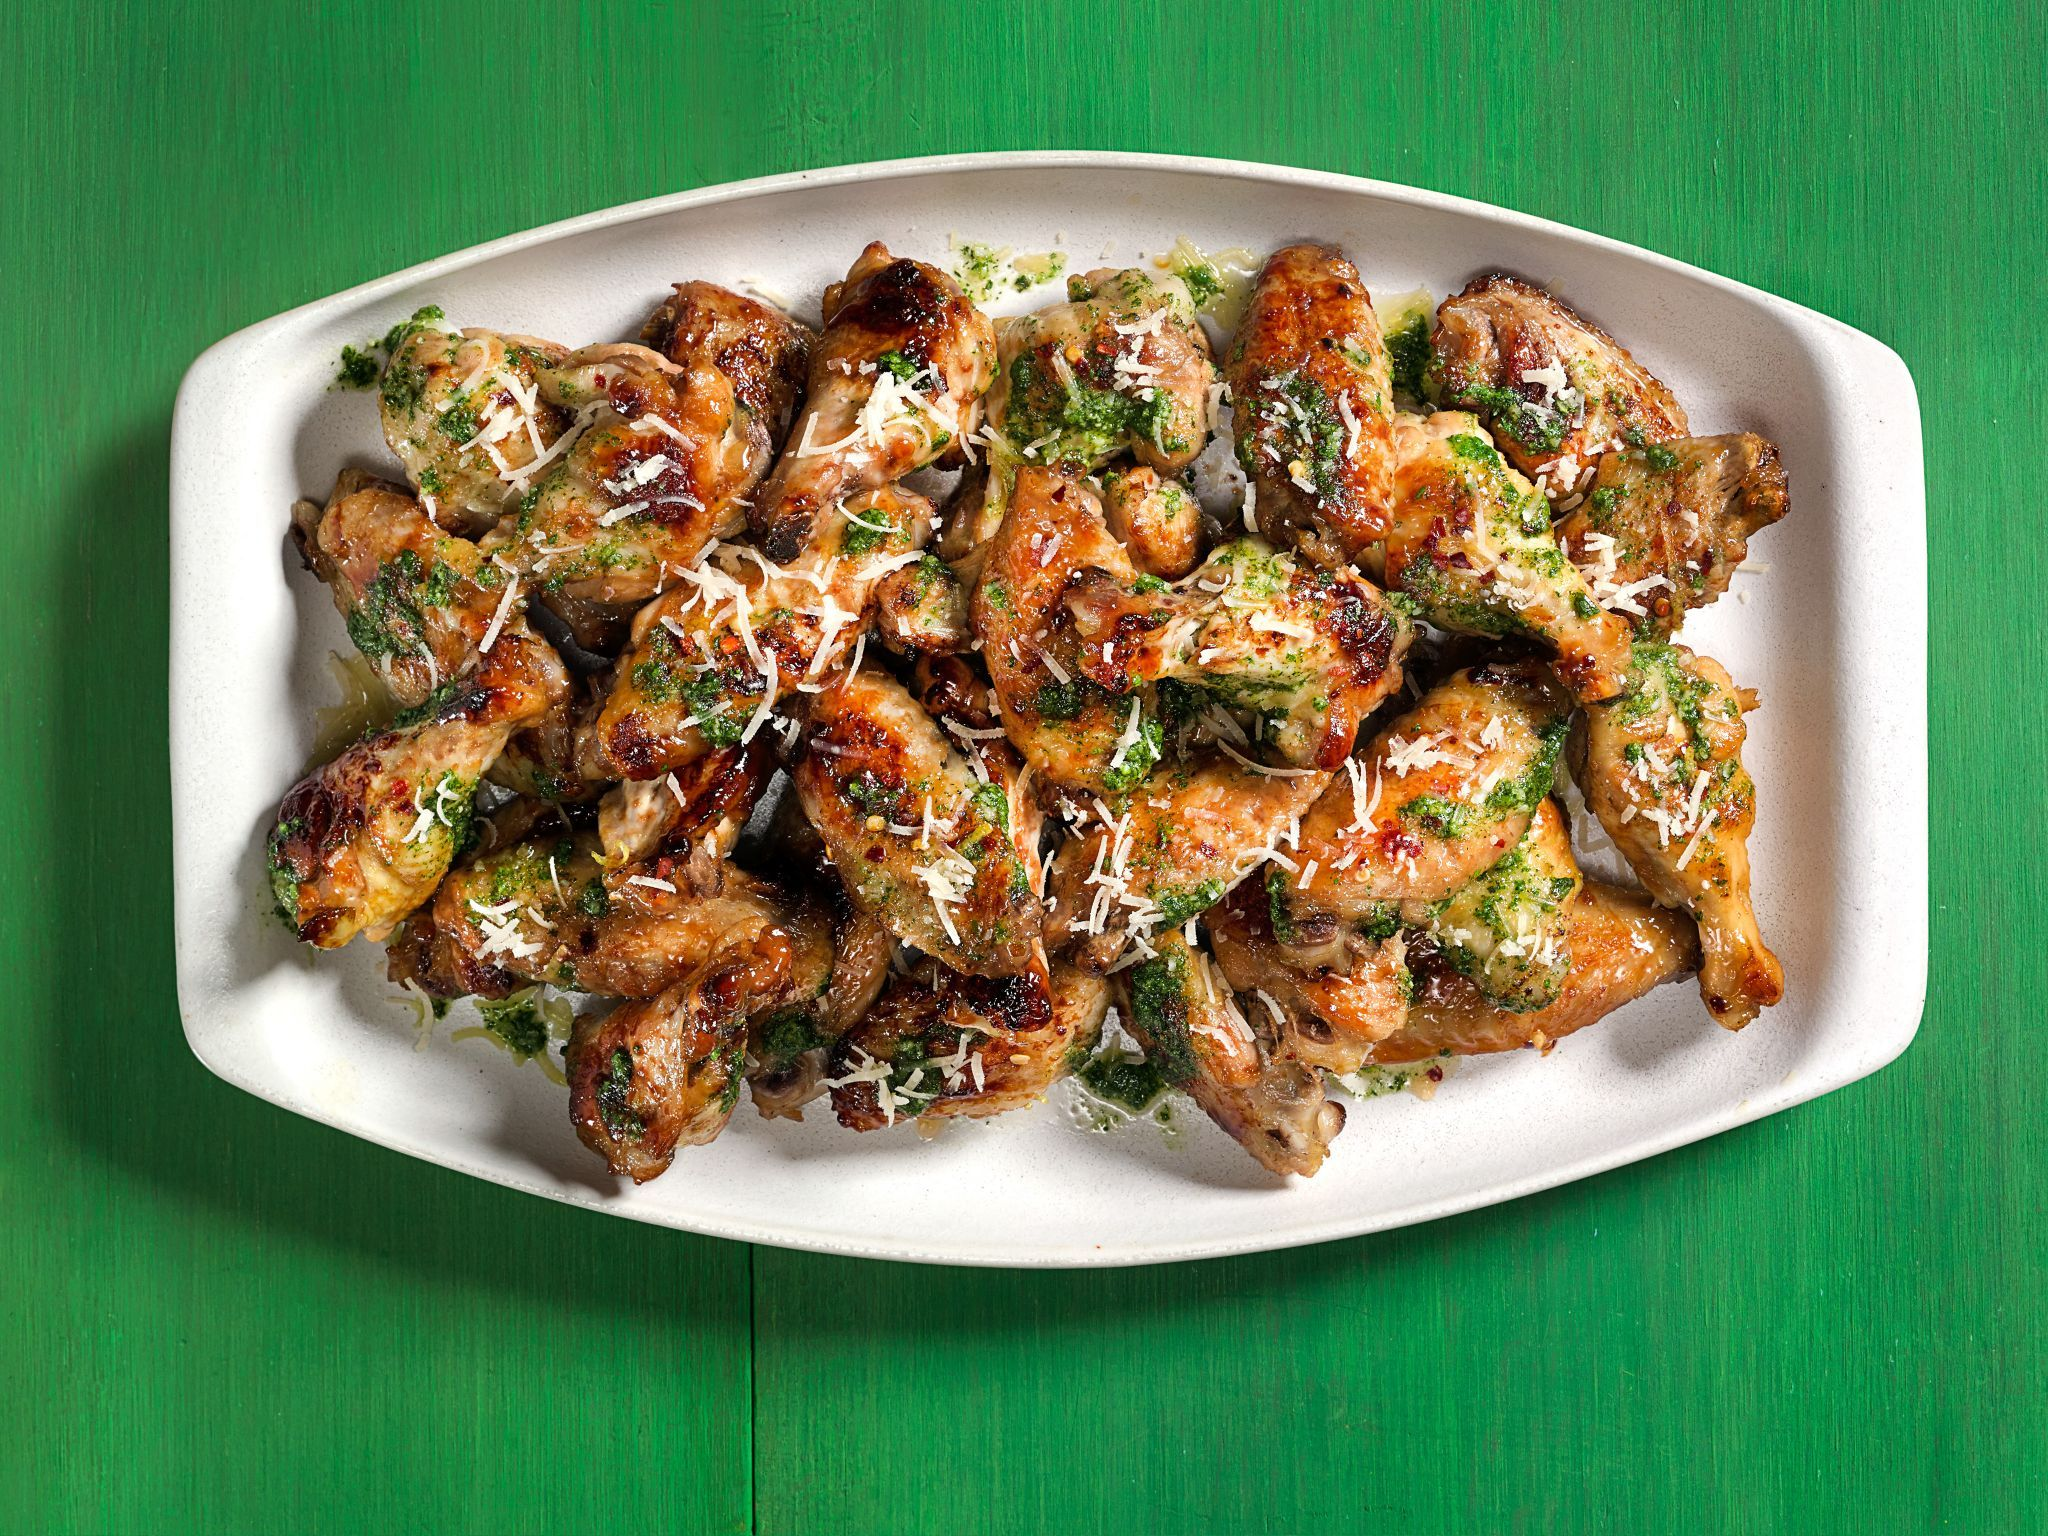 Get this all star easy to follow spicy pesto wings recipe from spicy pesto wings recipe from eddie jackson via food network forumfinder Image collections